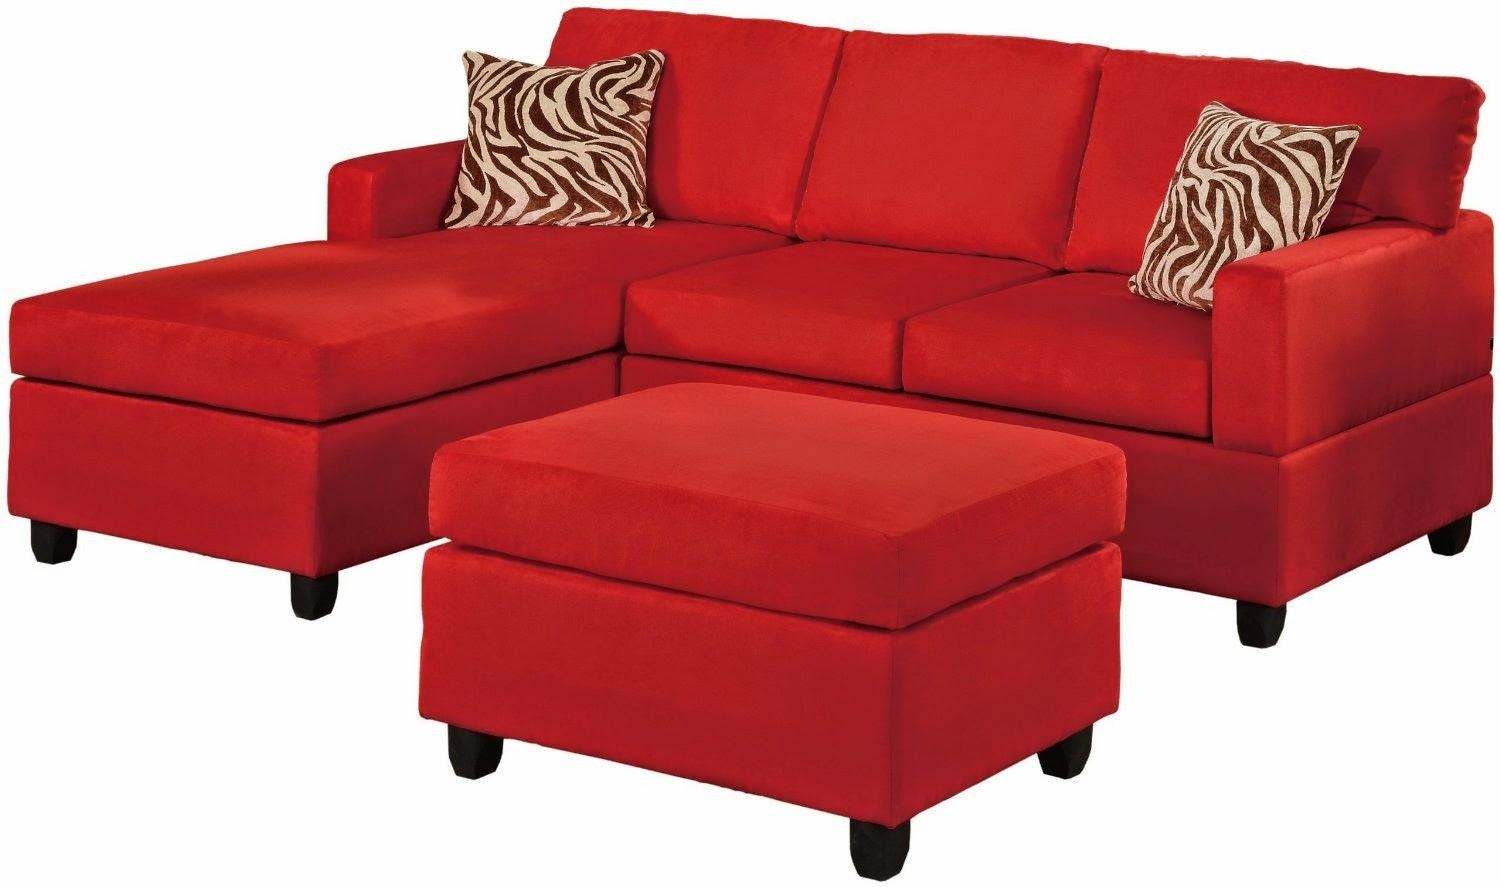 Red Sectional Sofas Cheap | Centerfieldbar In Red Sectional Sleeper Sofas (Image 11 of 22)